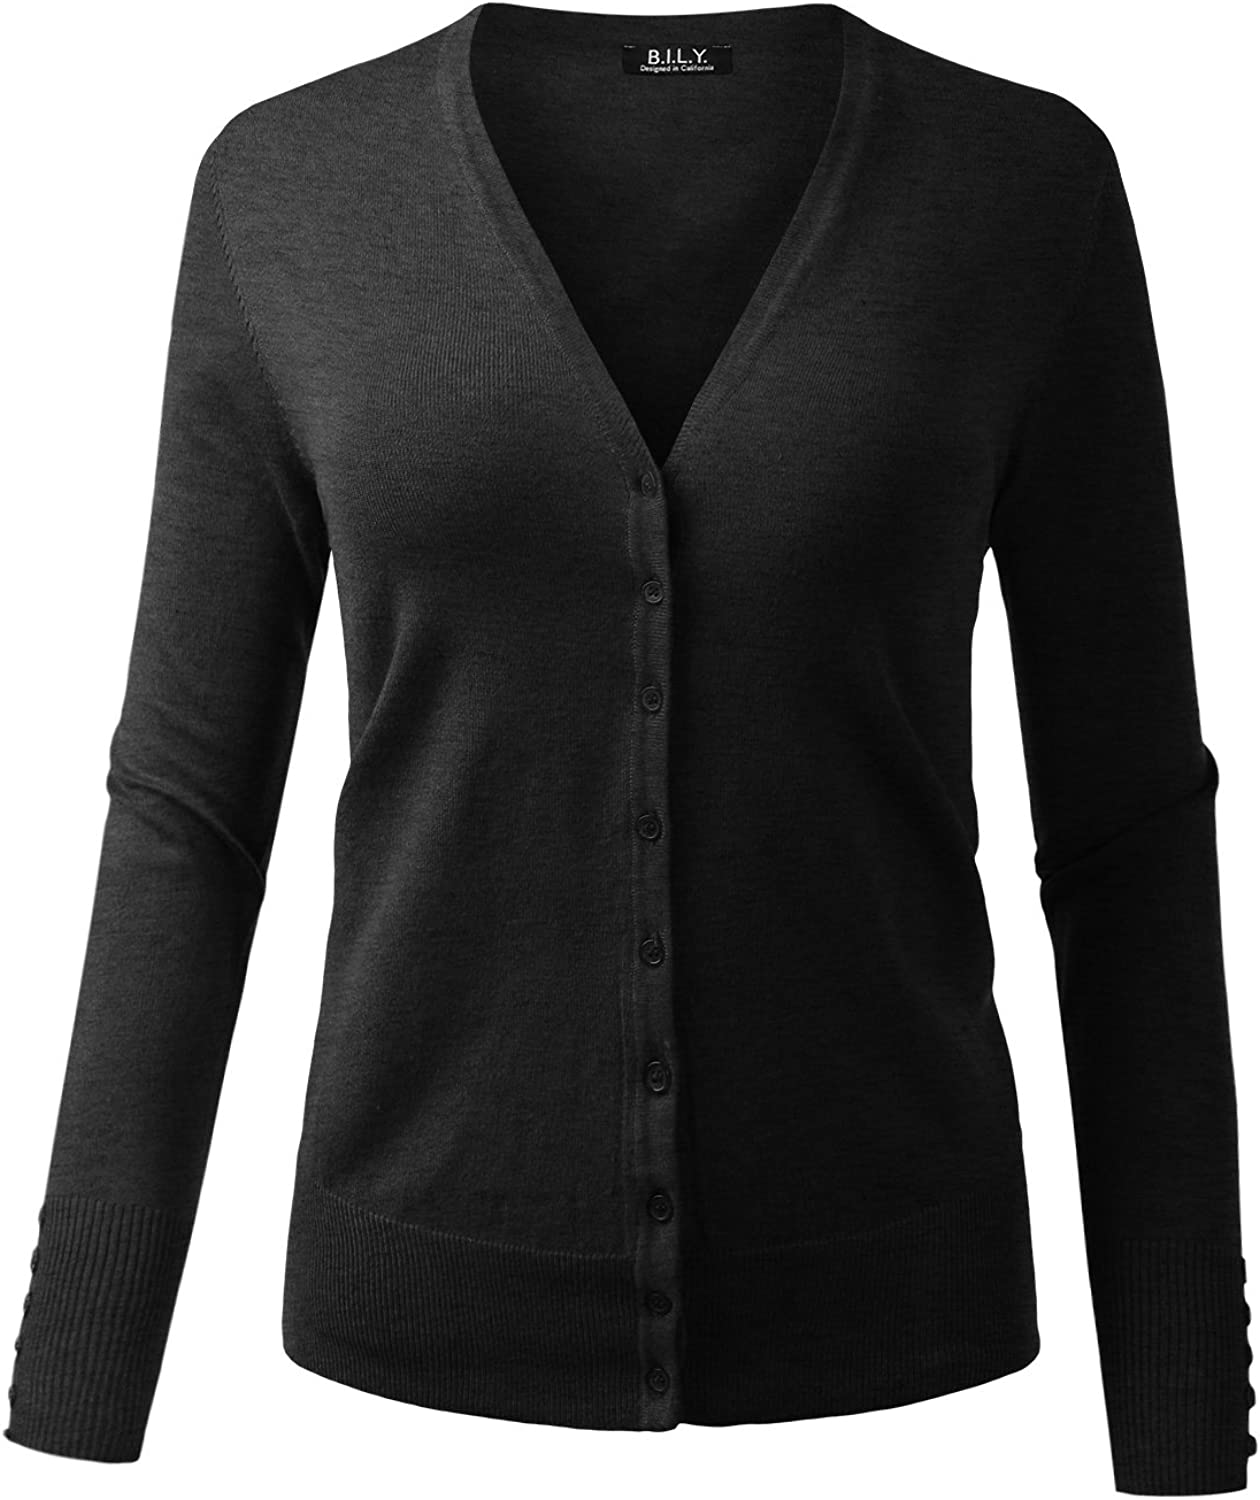 BH B.I.L.Y USA Women's V-Neck Button Down Long Sleeve Classic Knit Cardigan Charcoal Large